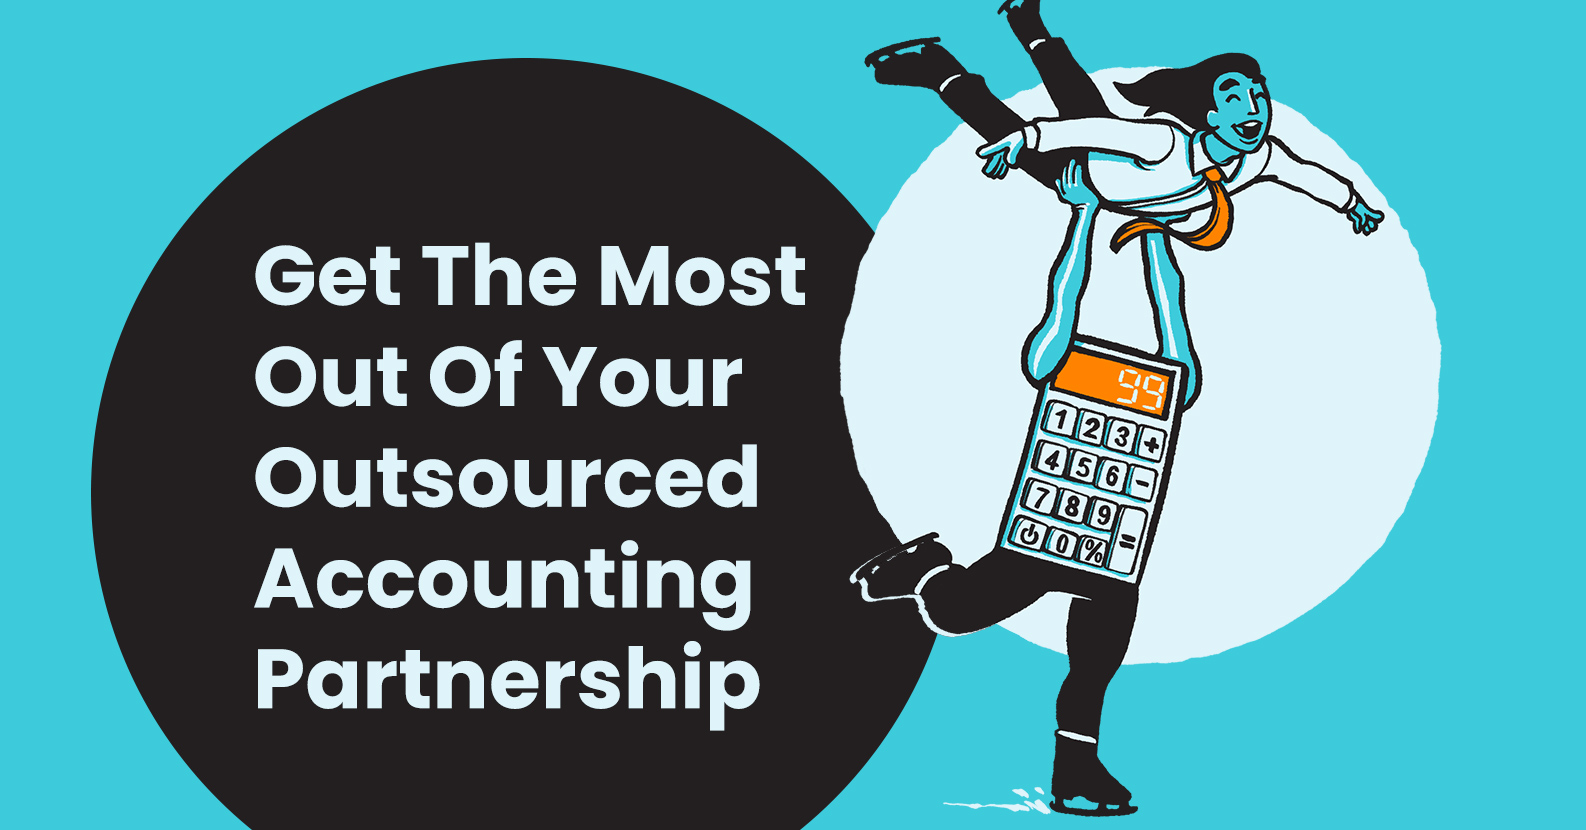 How to Get the Most Out of Your Outsourced Accounting Partnership